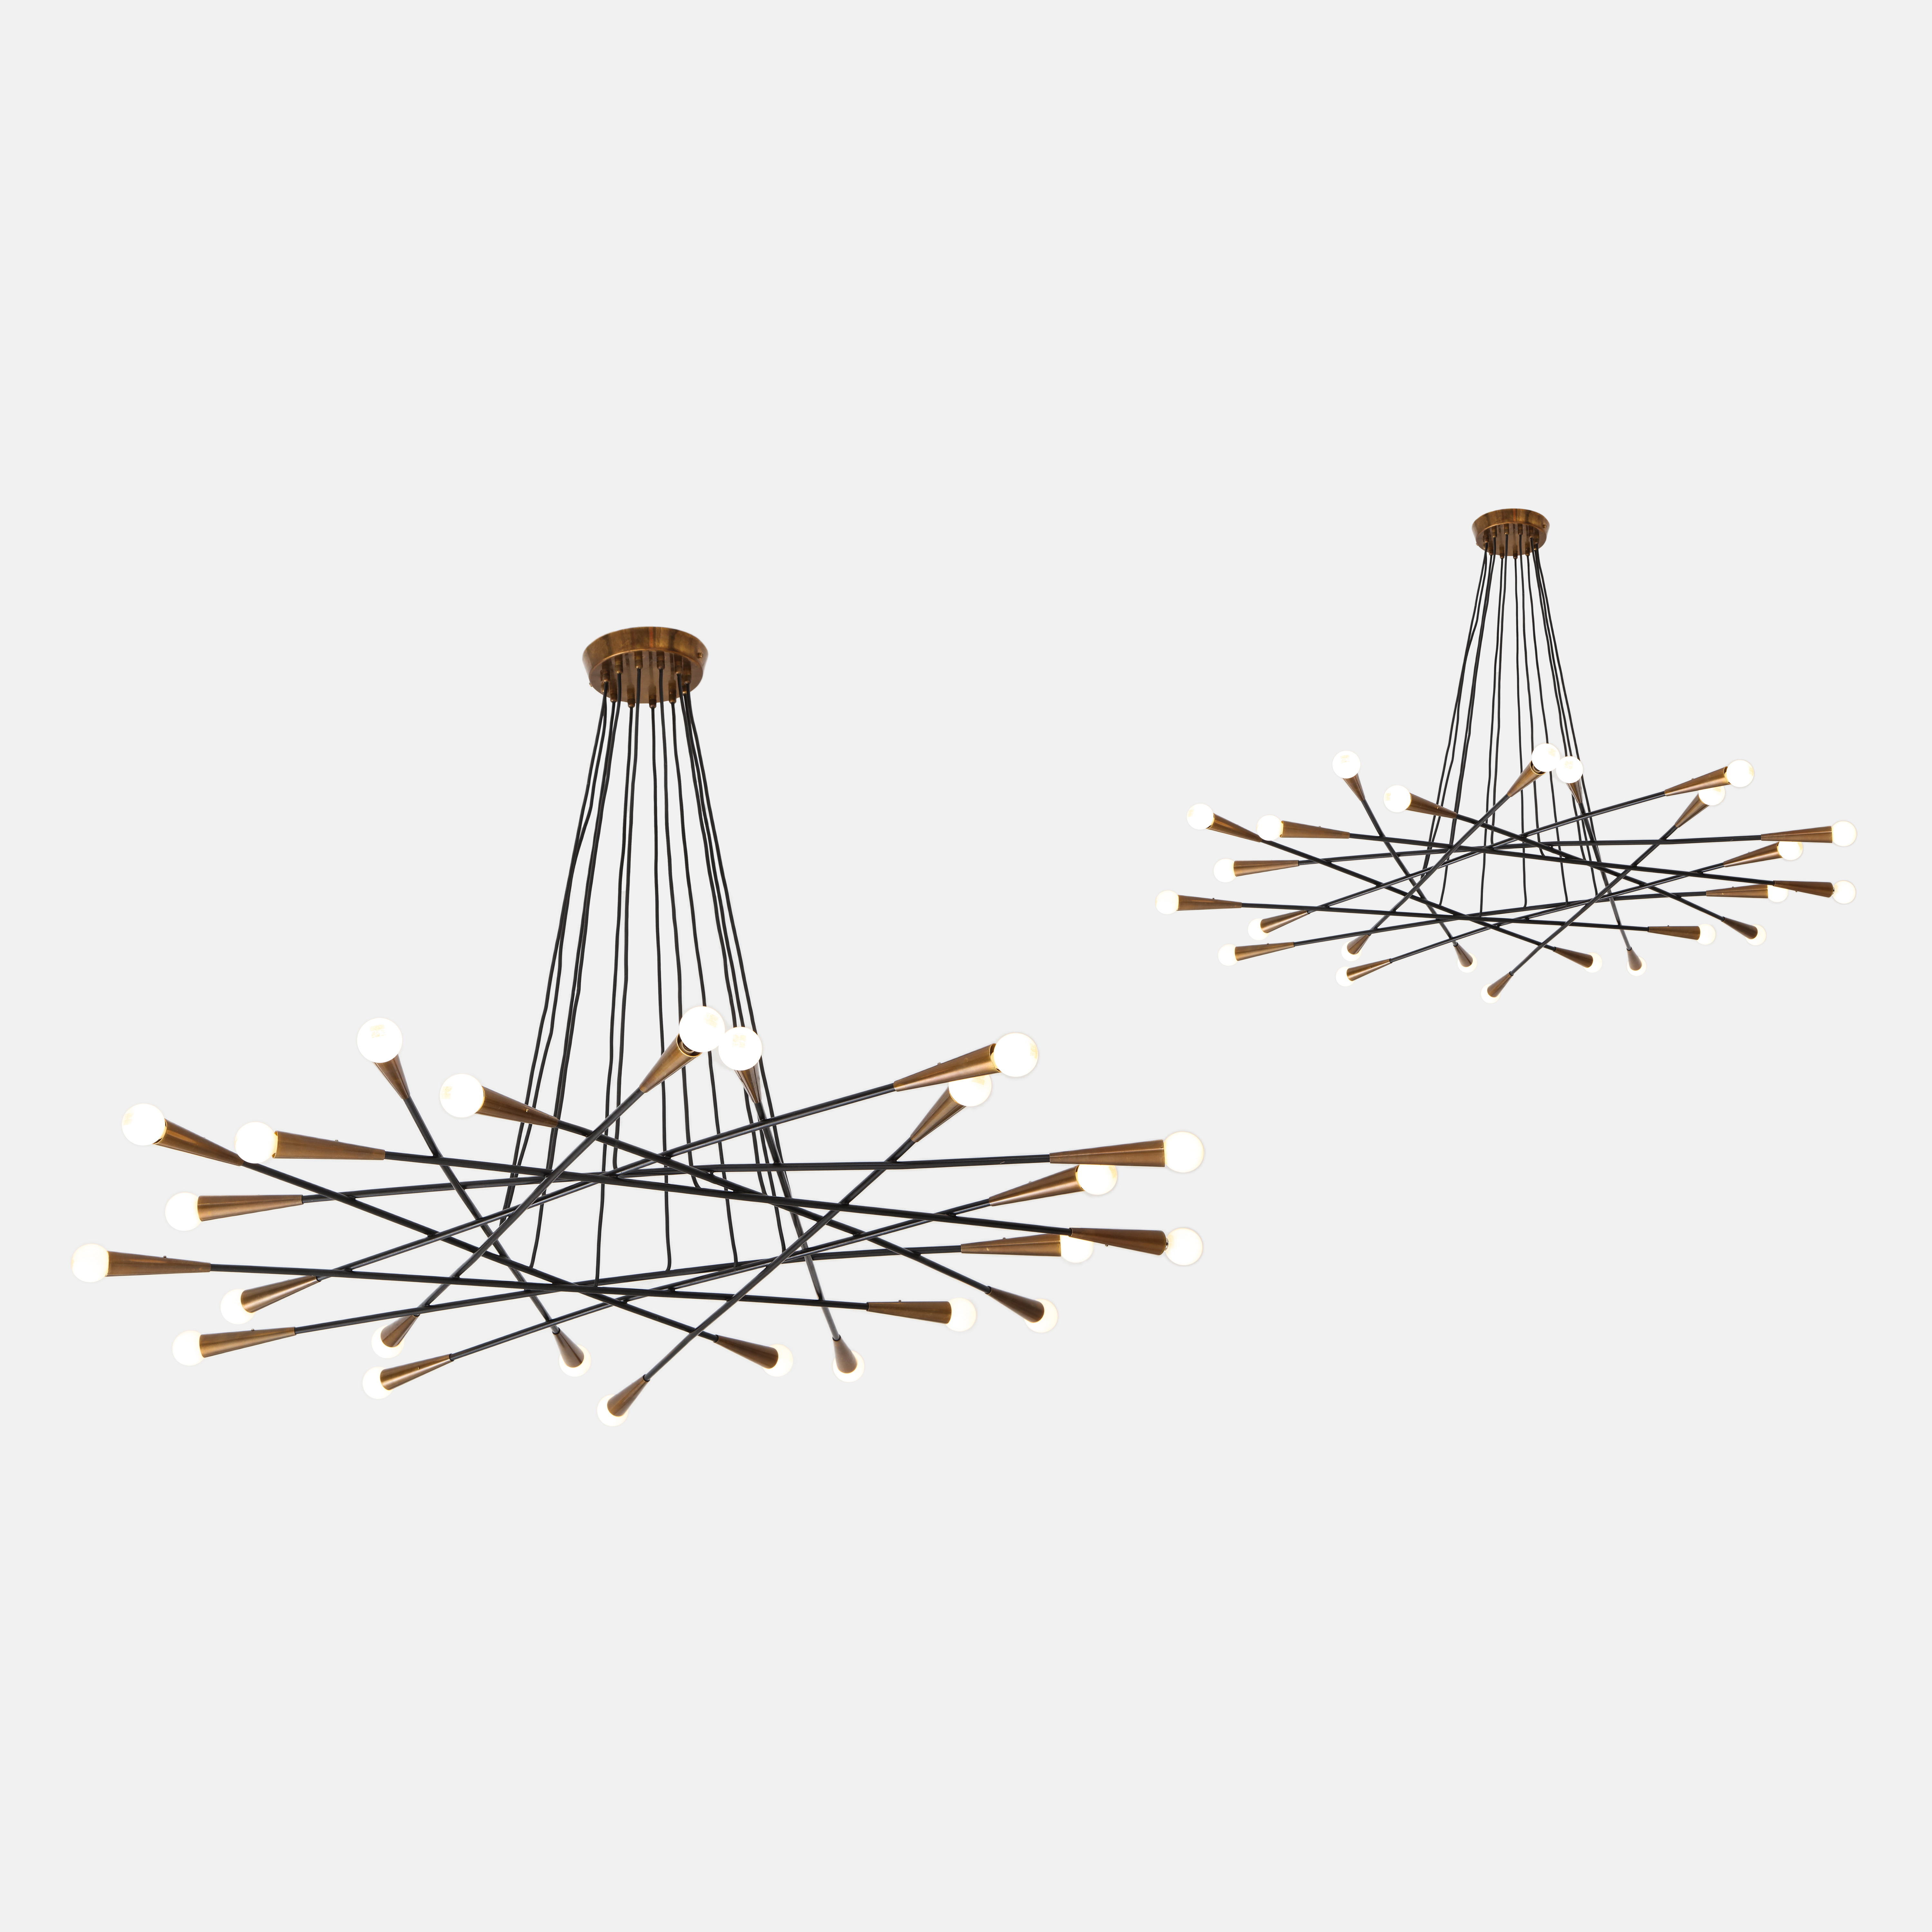 Pair of Rare Large Chandeliers by Stilnovo | soyun k.